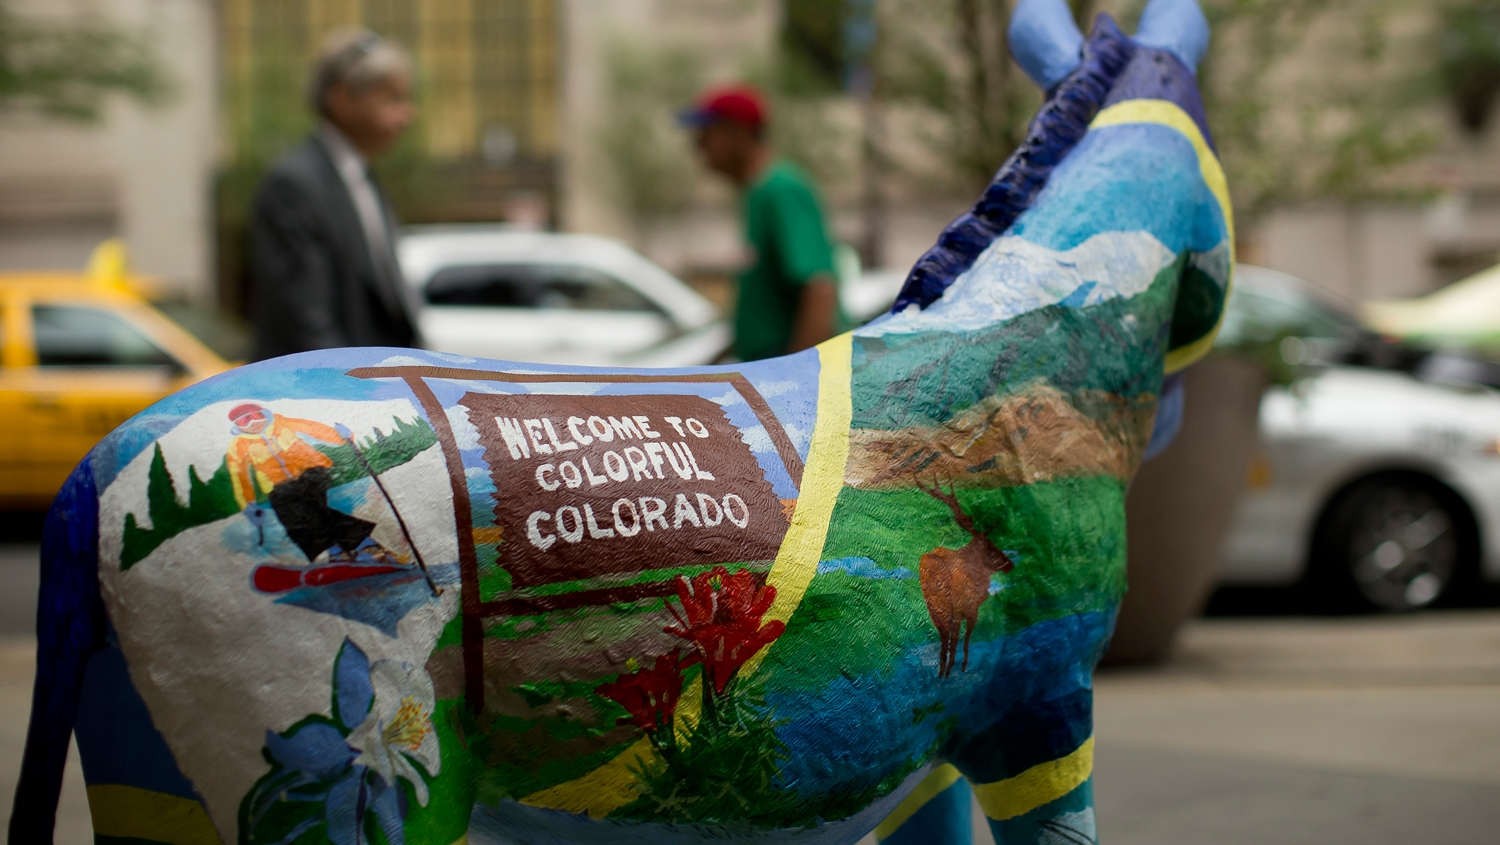 A donkey painted with visual elements representing Colorado.